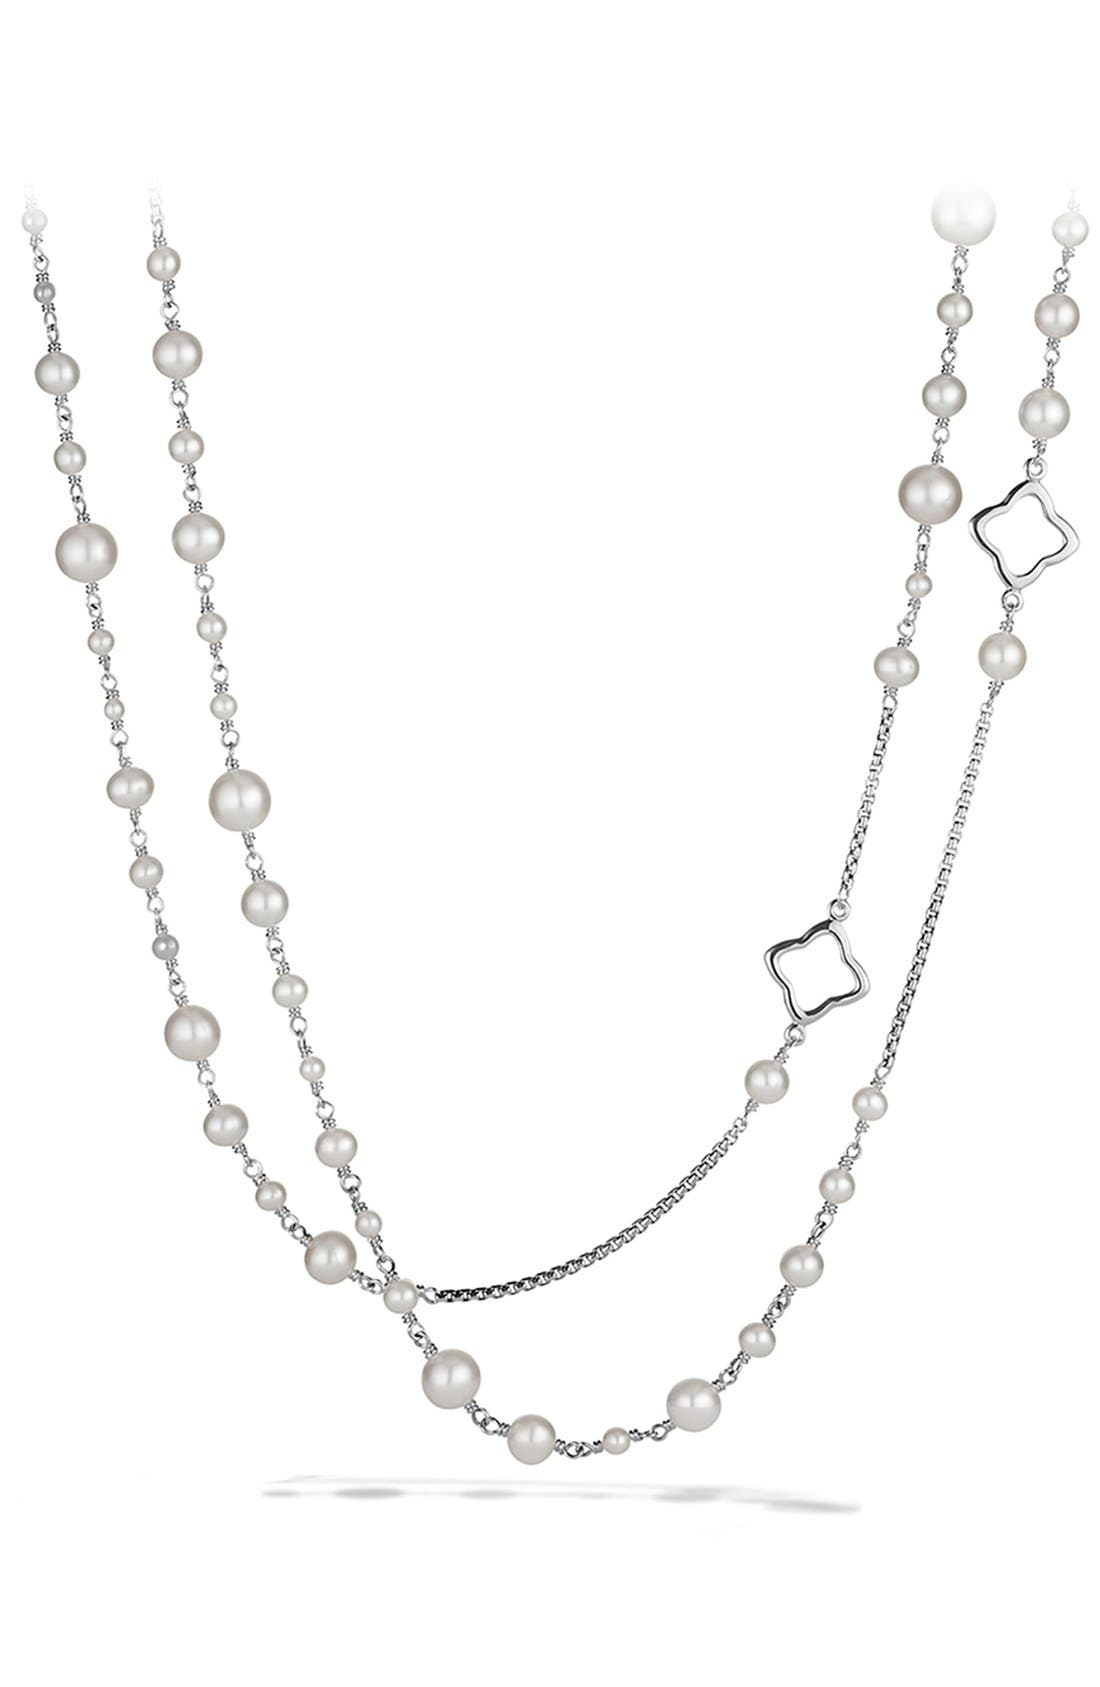 Alternate Image 1 Selected - David Yurman Pearl Chain Necklace